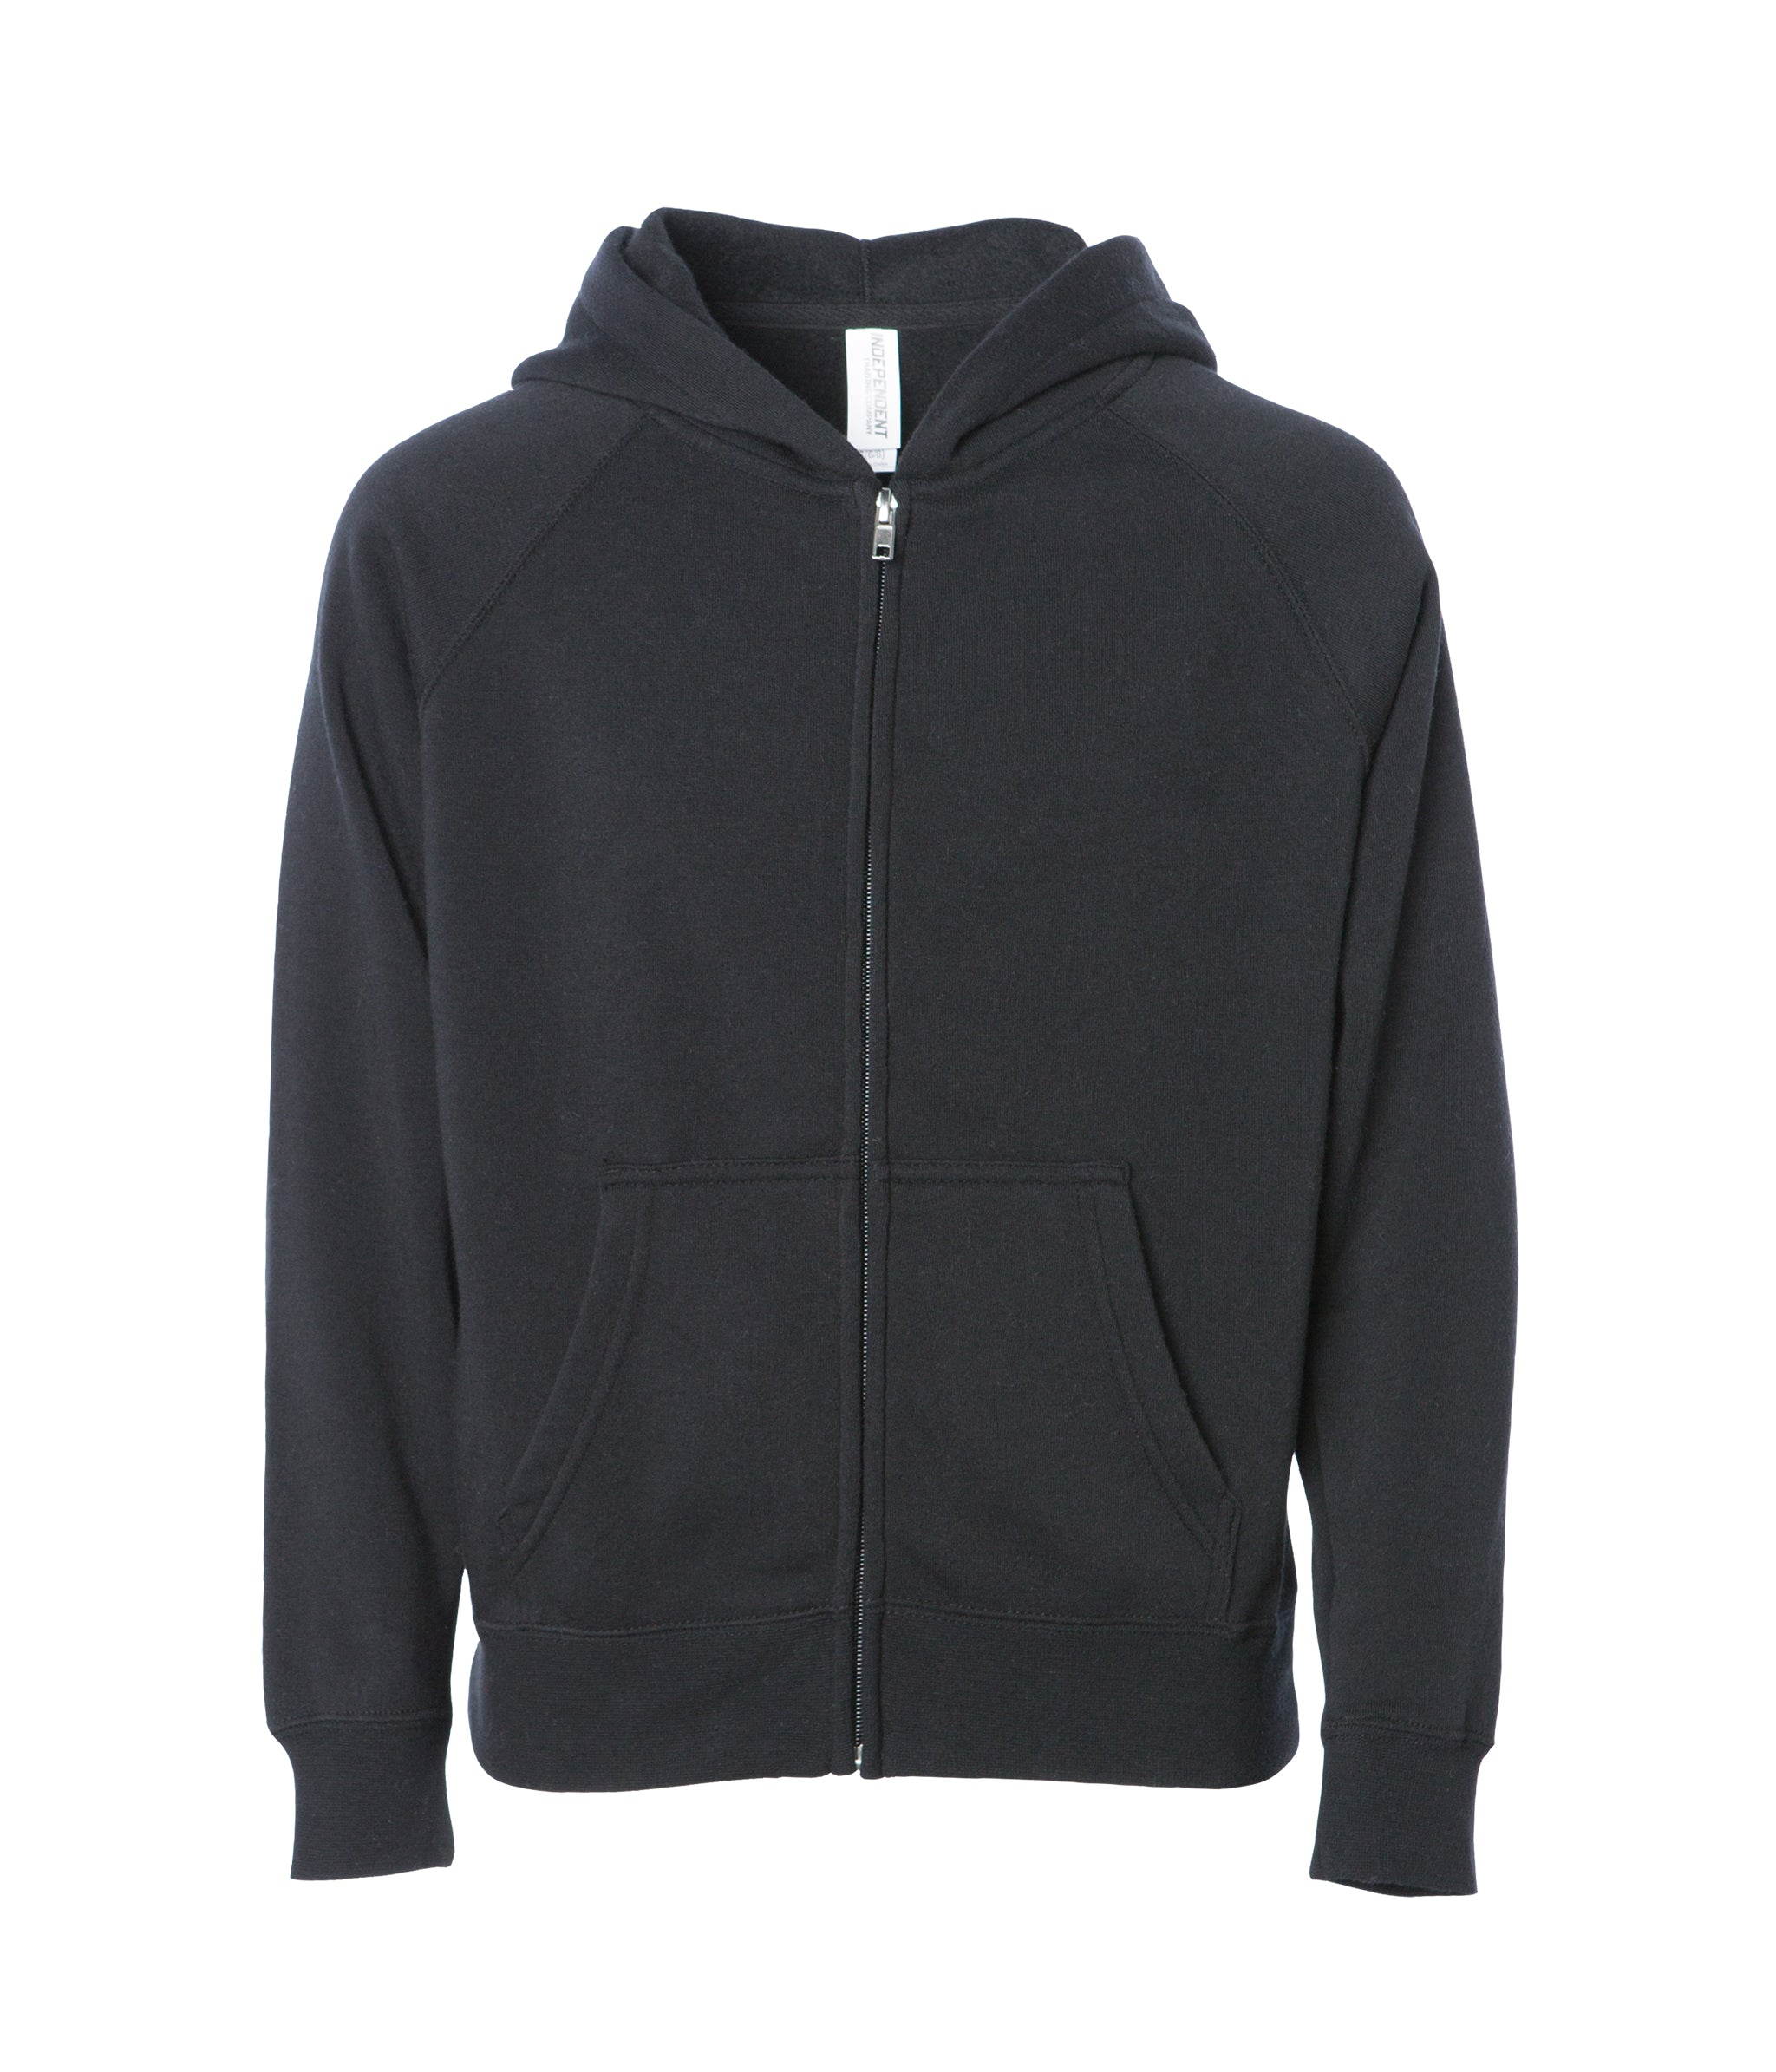 6629e53237097 Youth Special Blend Raglan Zip Hoodie | Independent Trading Company